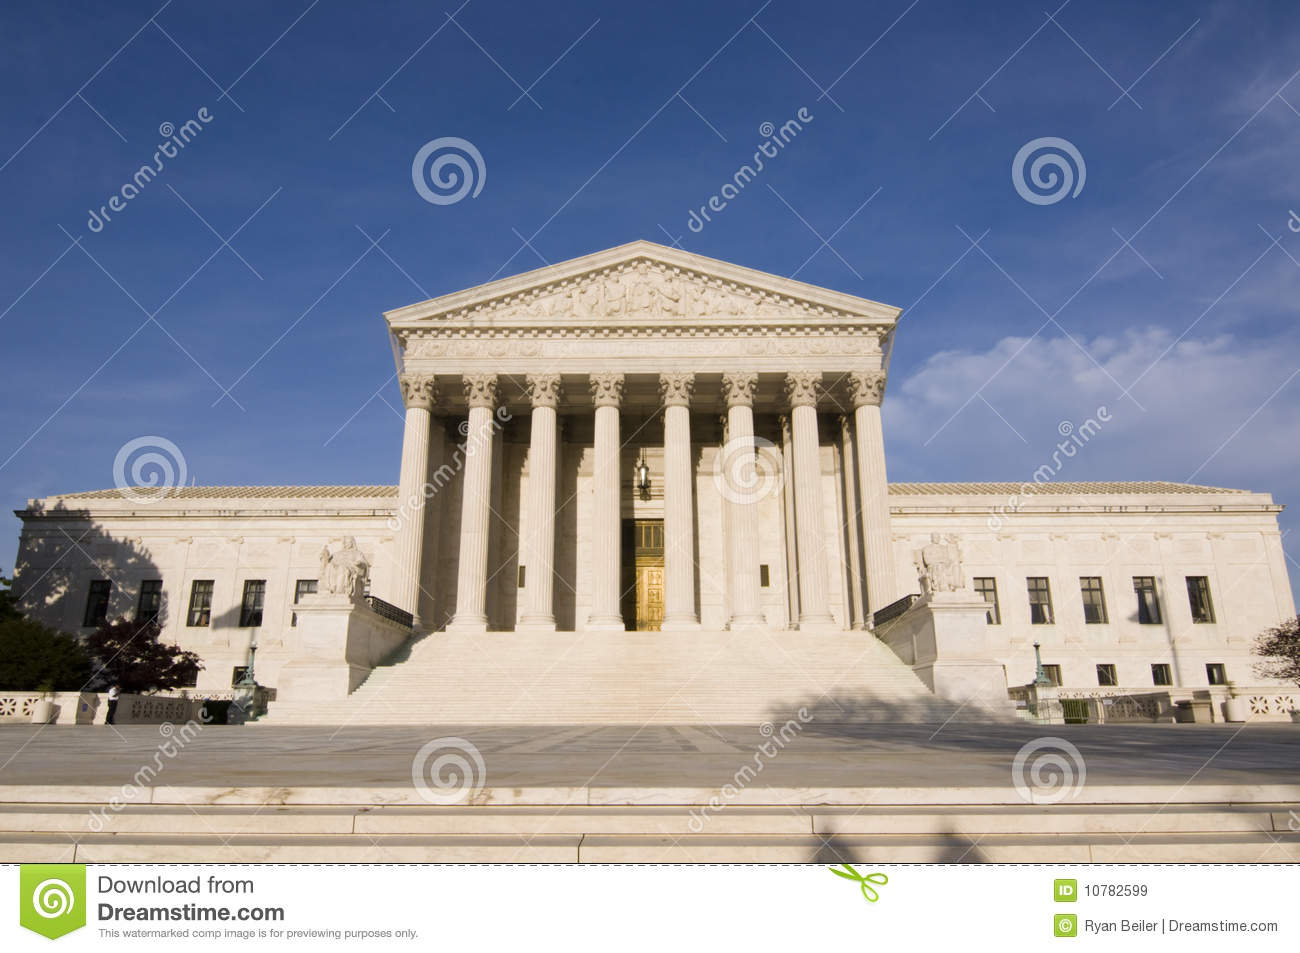 The two main purpose of the united states supreme court